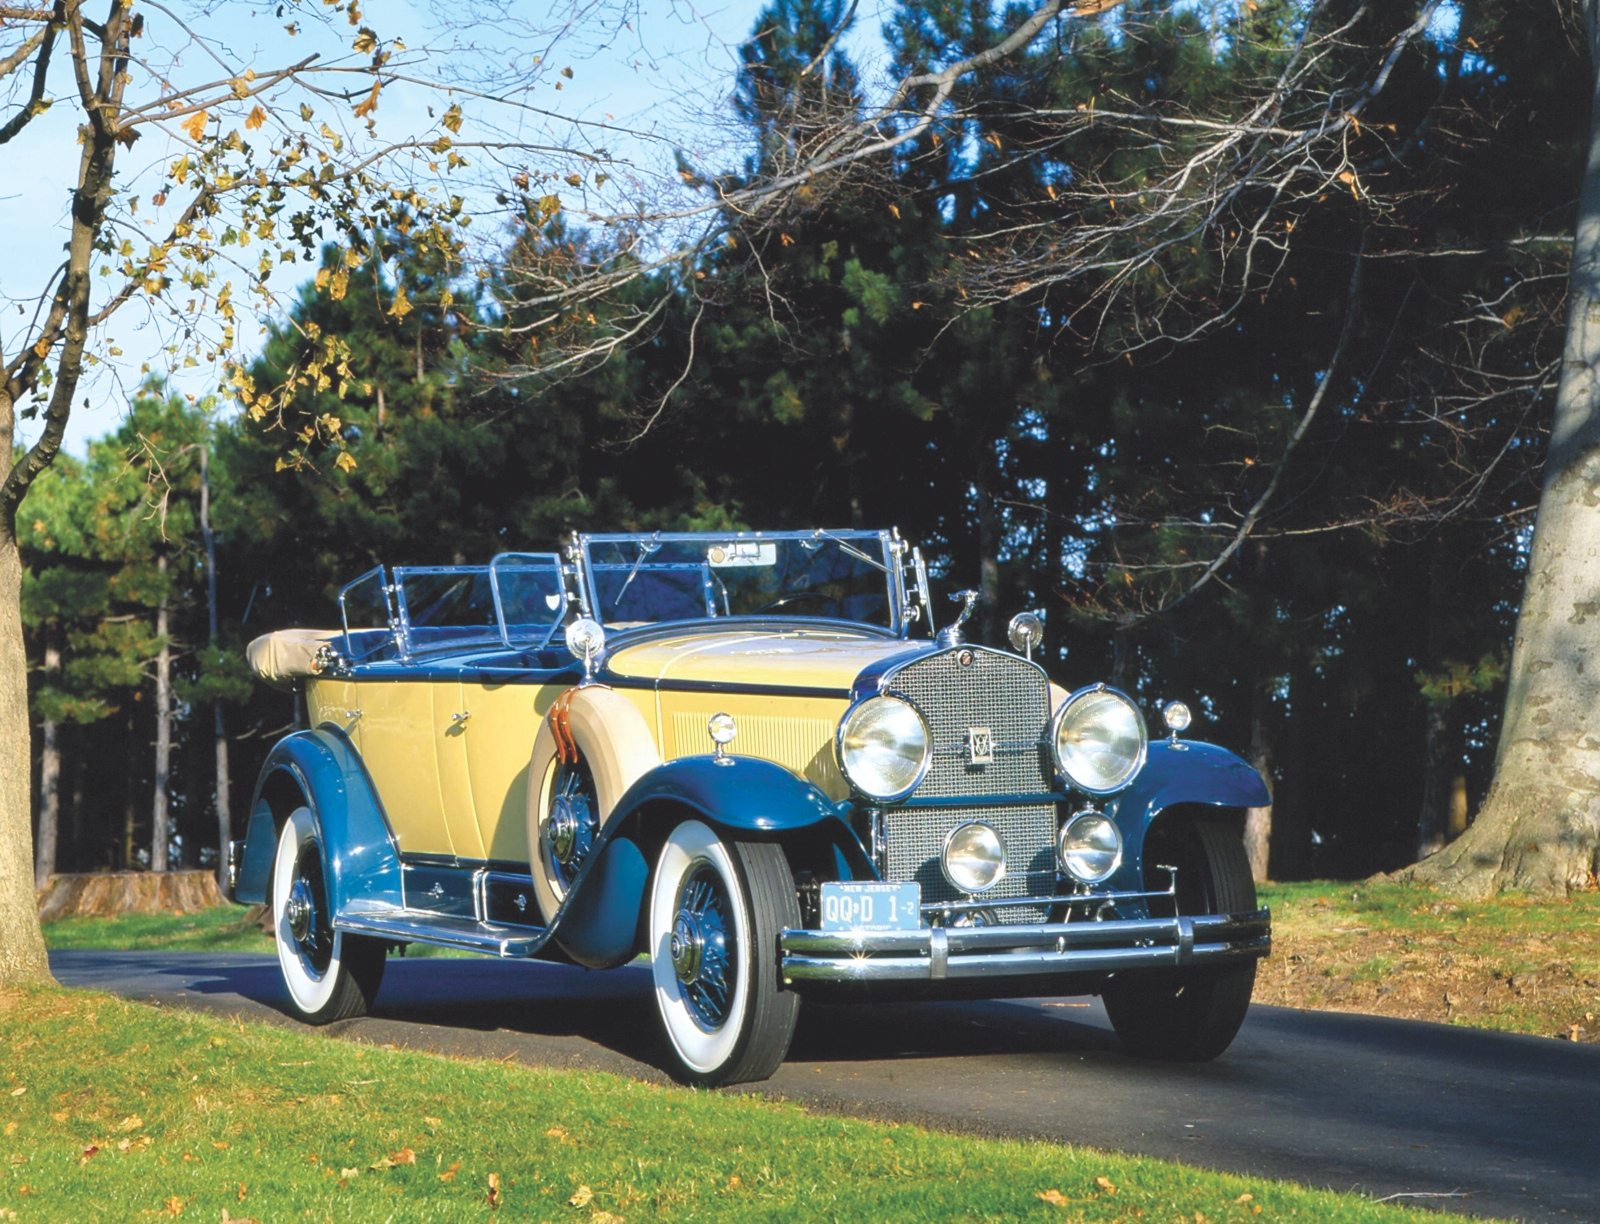 The History Of Fender Lines Heacock Classic Insurance 1930 Chevy Sedan Spare Tire Mount In 1927 Harley Earl Brought Style To Gm With La Salle Influence Its Sweeping And Side Spares Spread